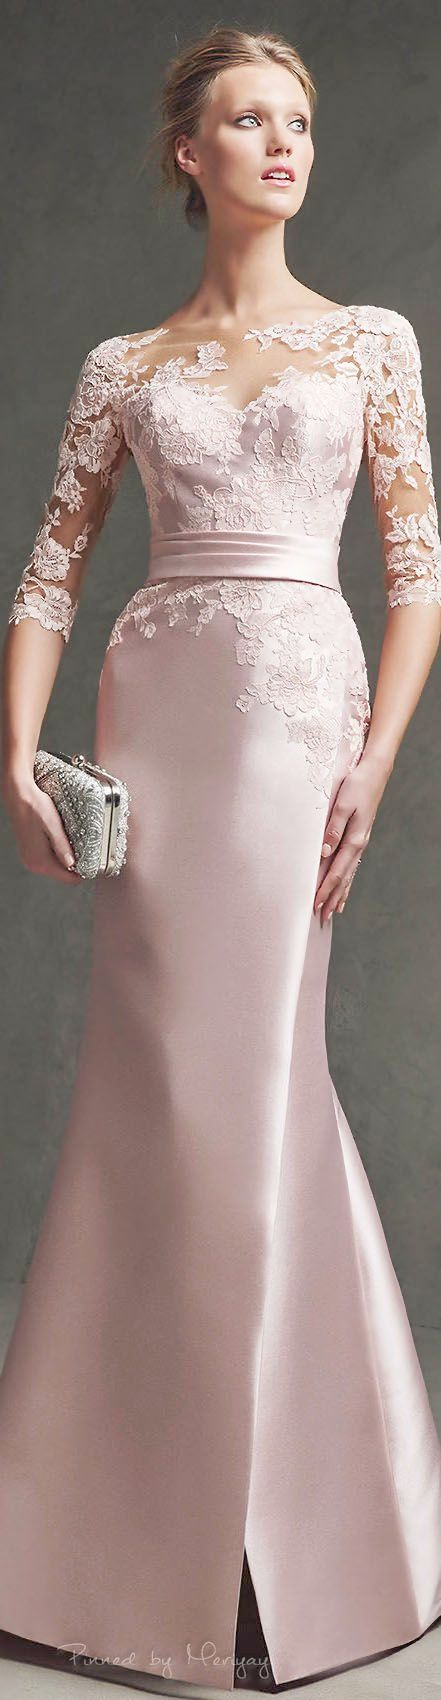 Evening Dress For Wedding Guest Evening Gown Rental Los Angeles